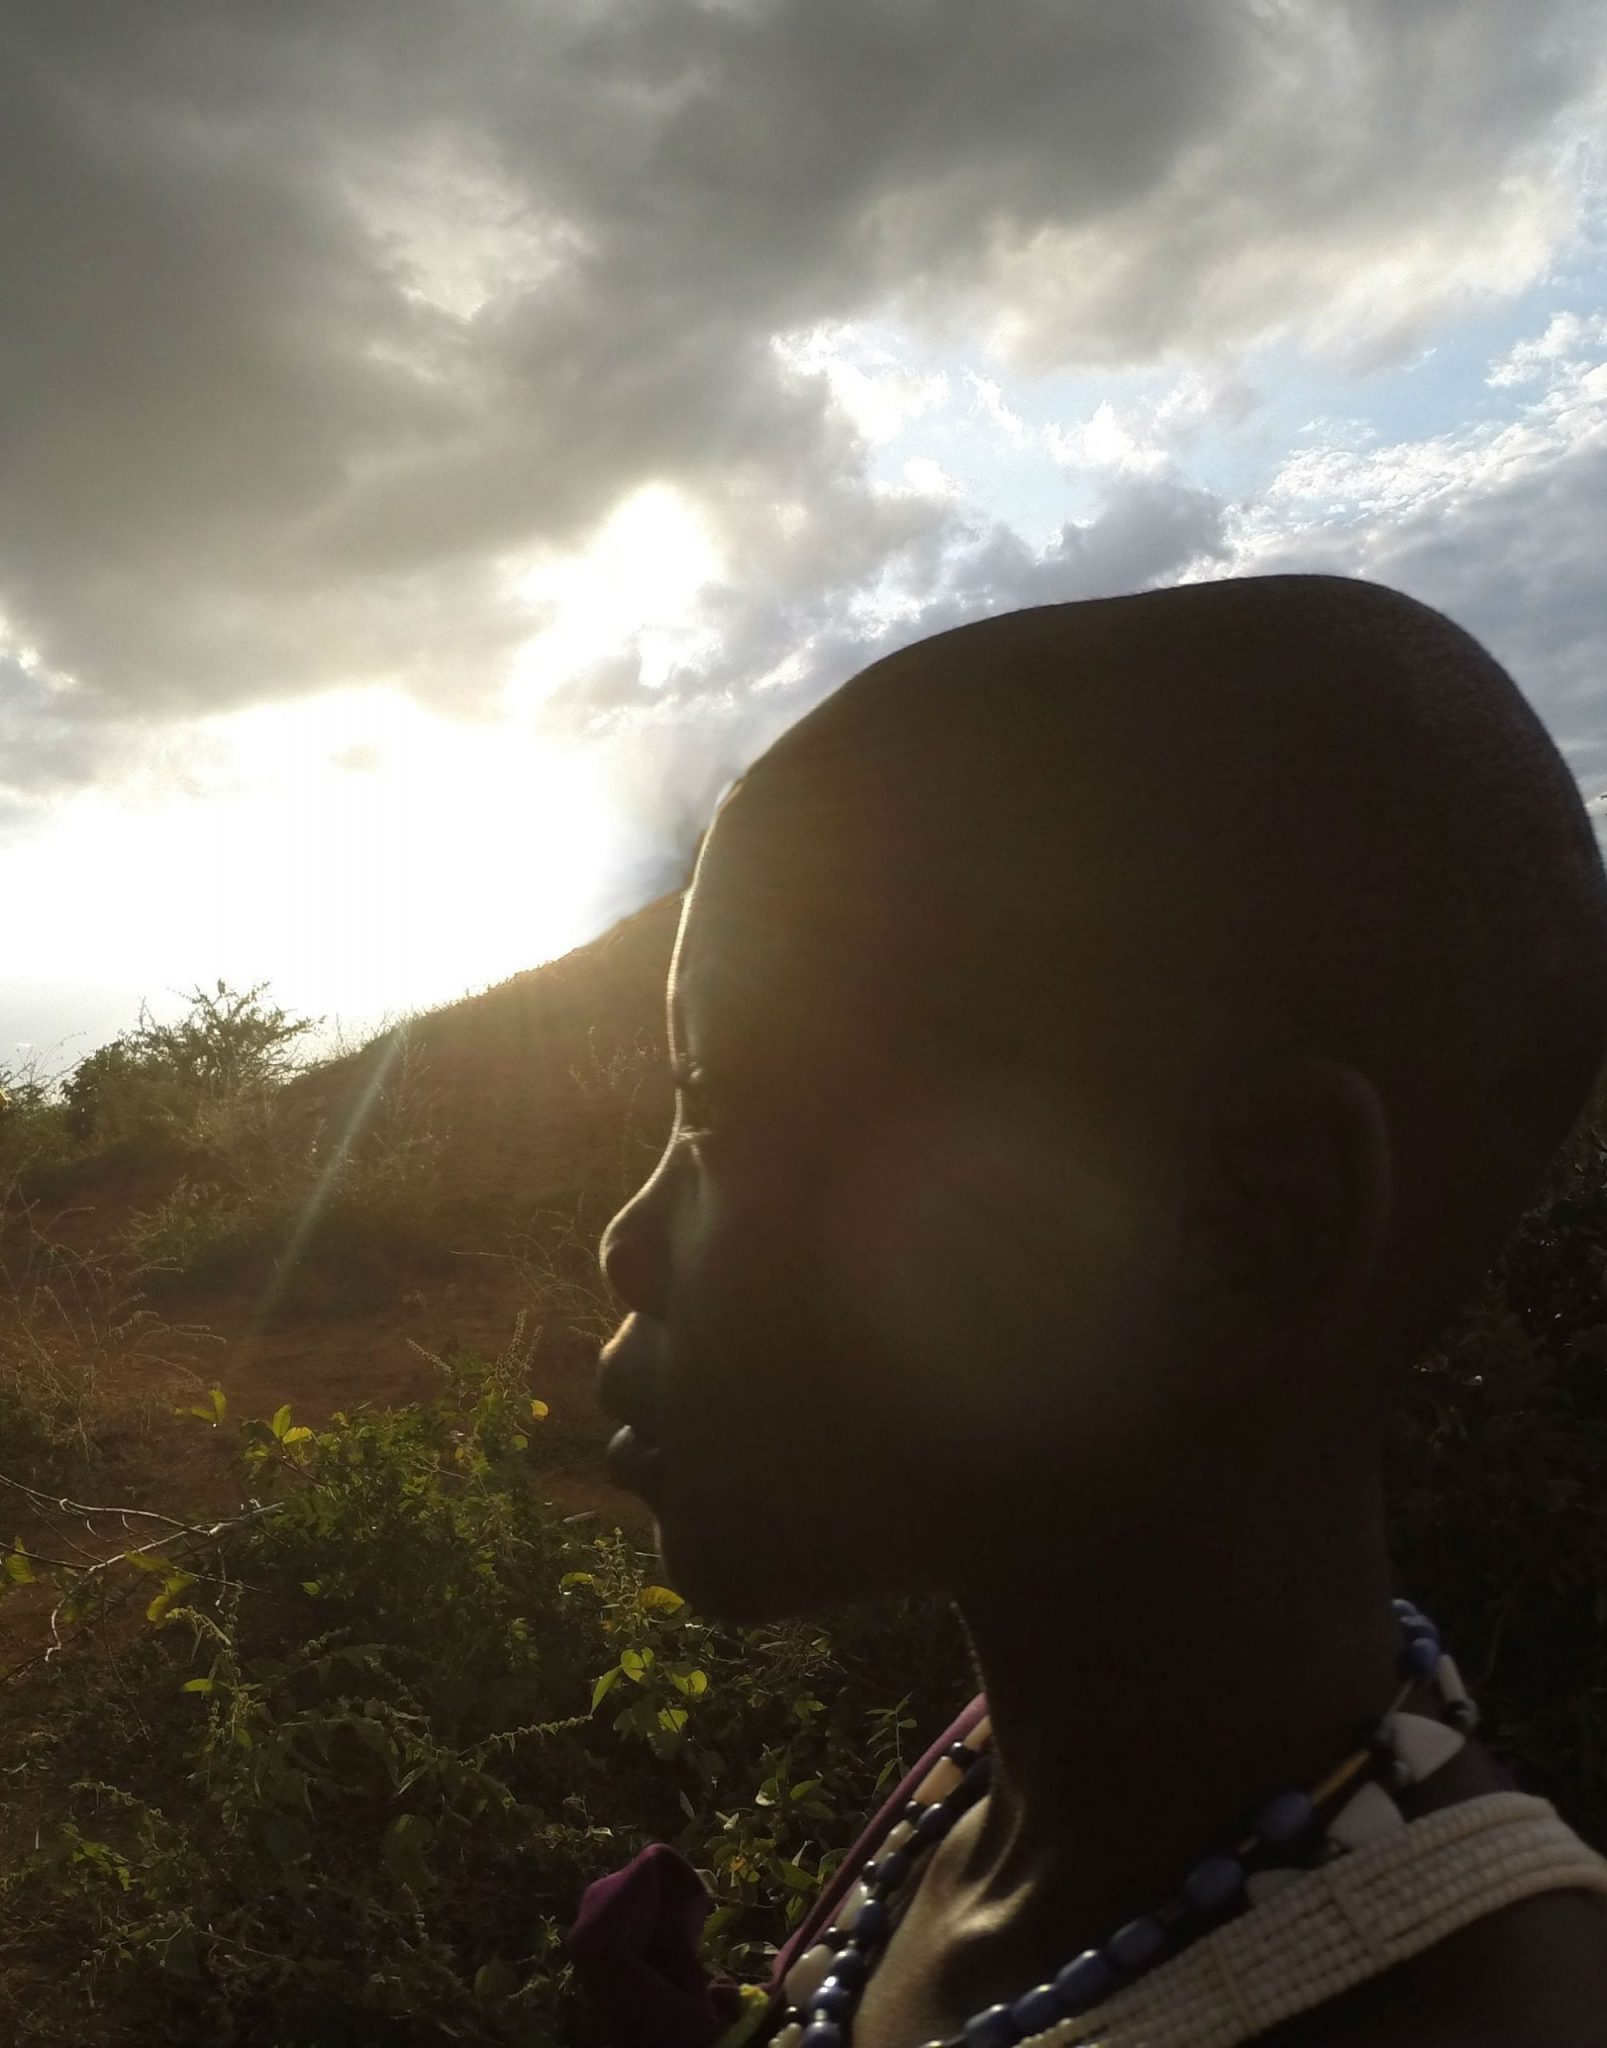 A Kenyan child looking into the distance with the sun shining behind them.